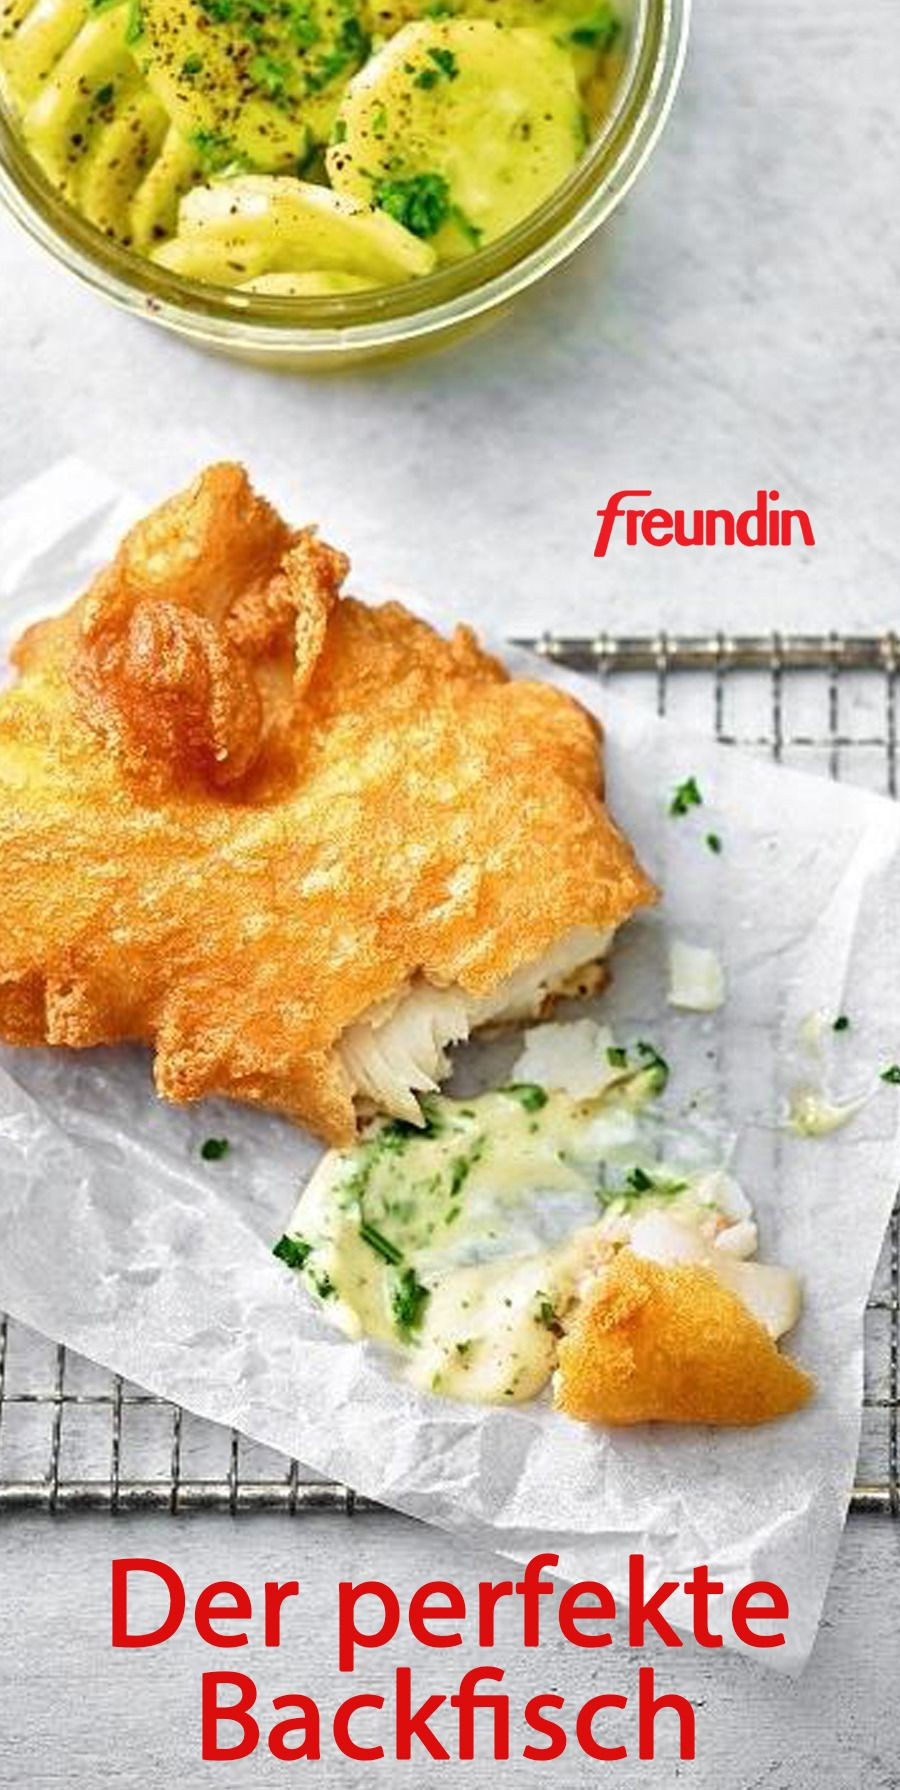 Photo of The perfect fried fish | freundin.de